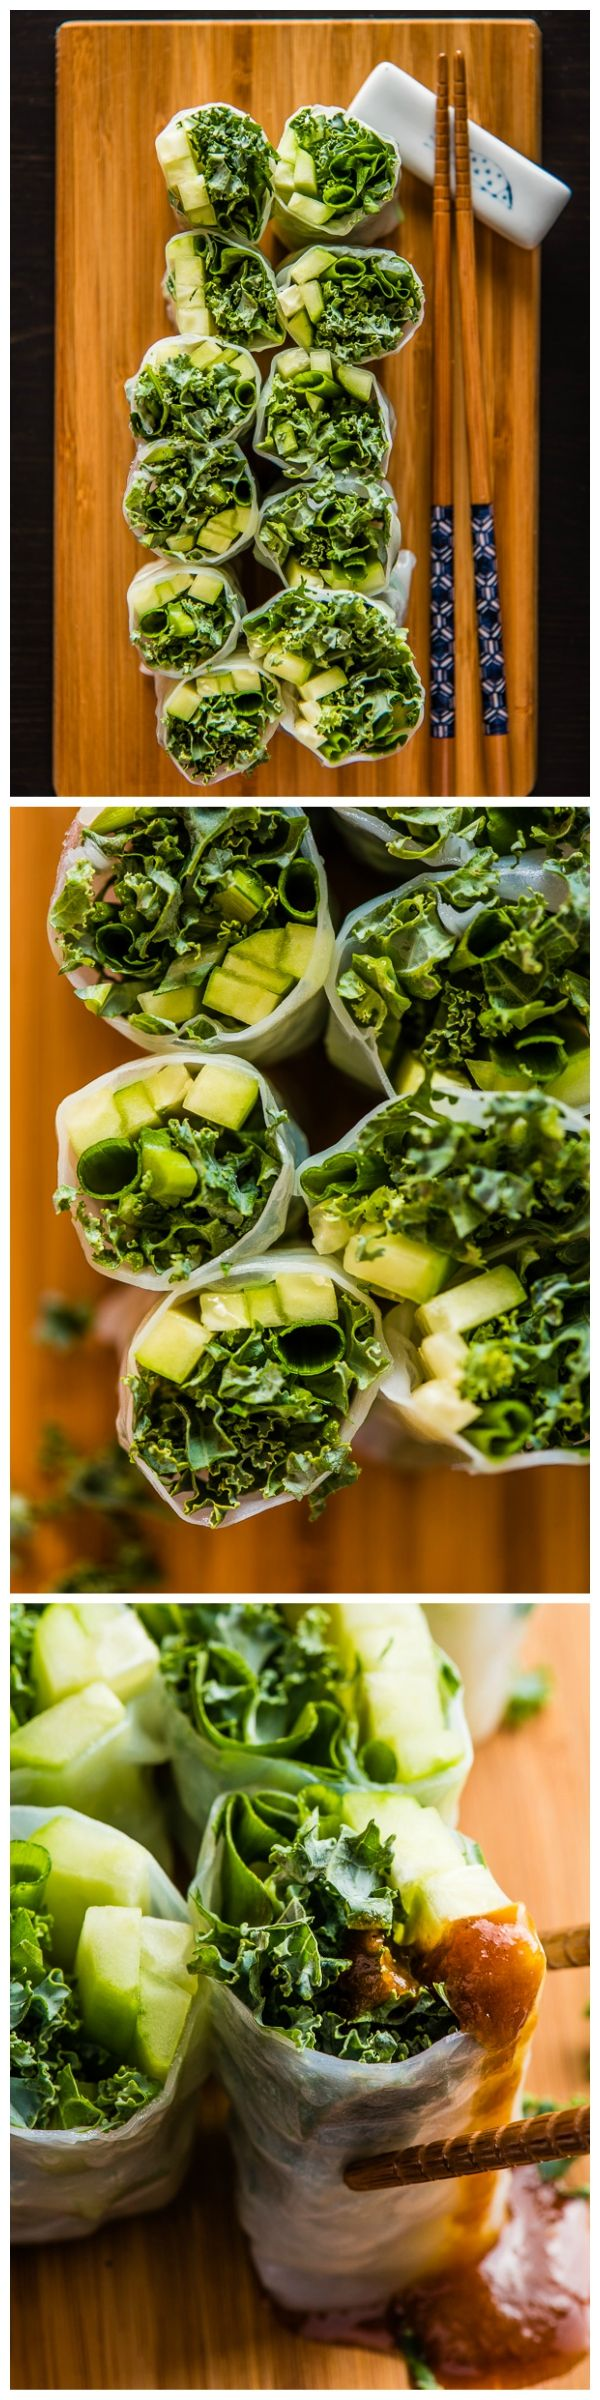 Summer Kale Rolls - Try dipping this skinny roll in homemade hoisin sauce once, and you'll enjoy eating healthy food all the time!